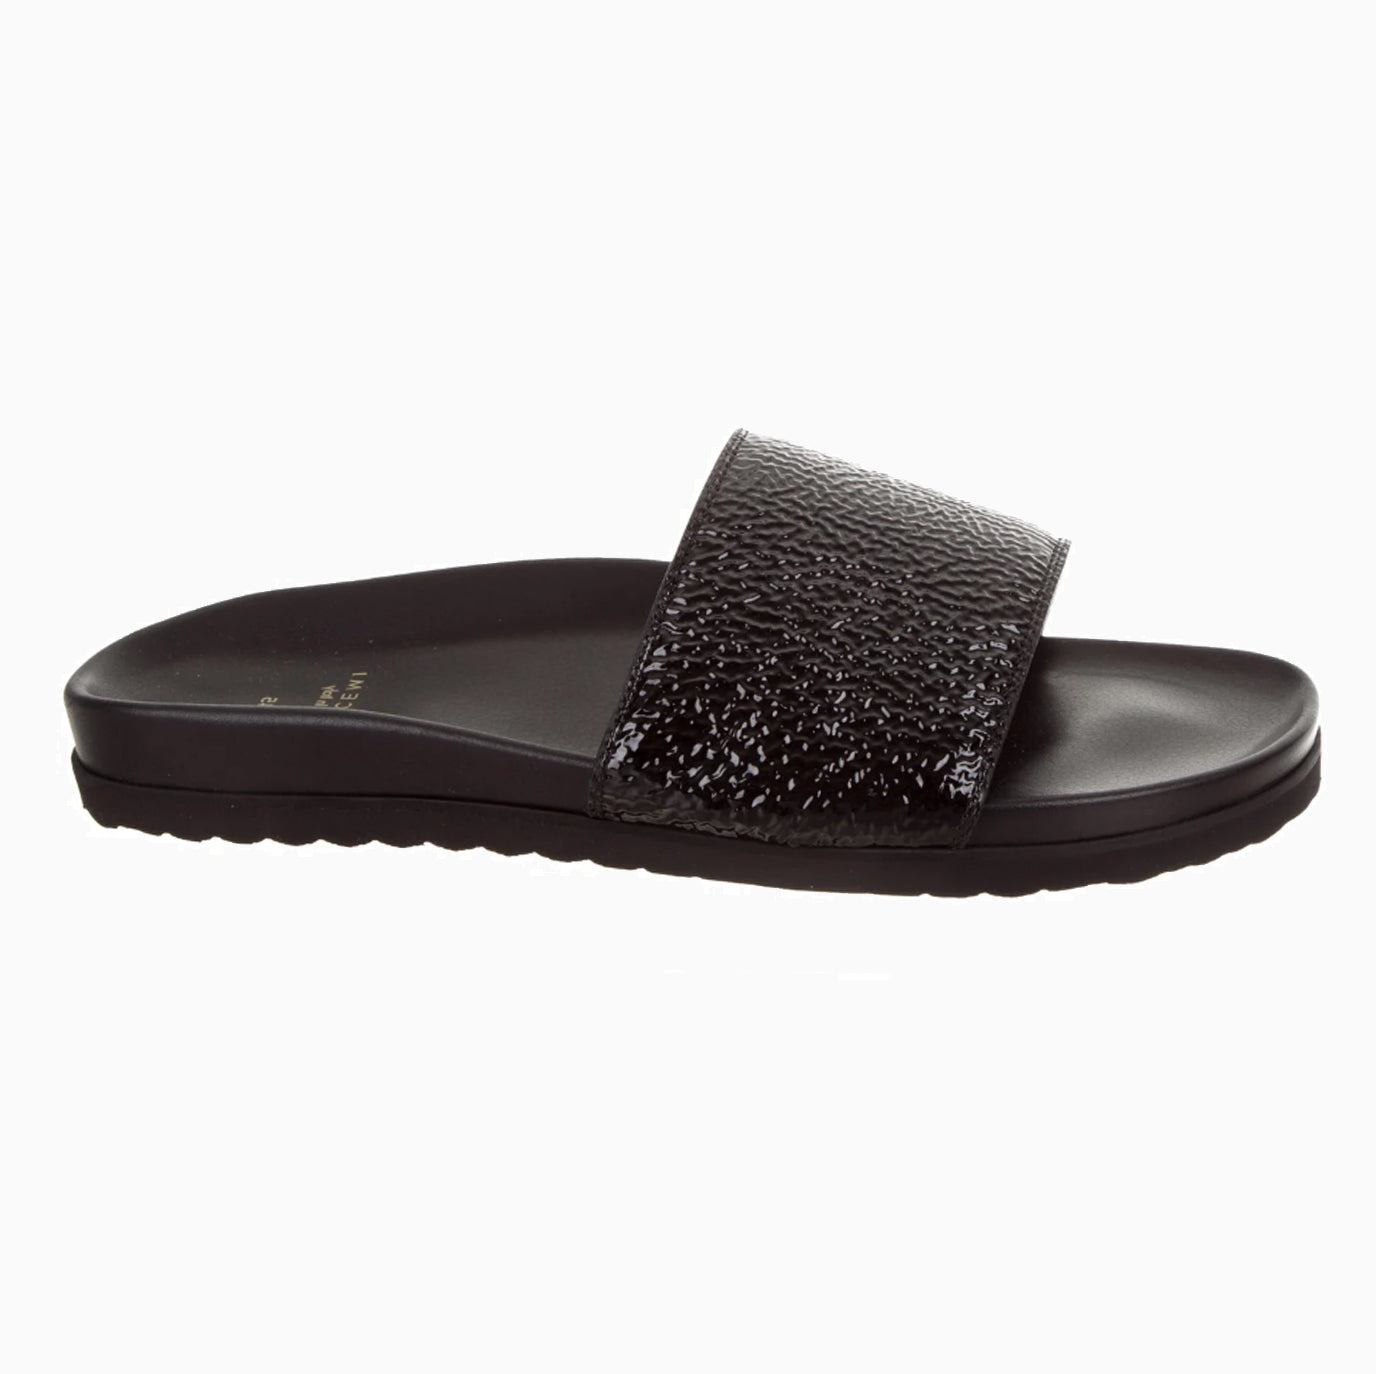 Women's Slides Naplak | Black-Buscemi